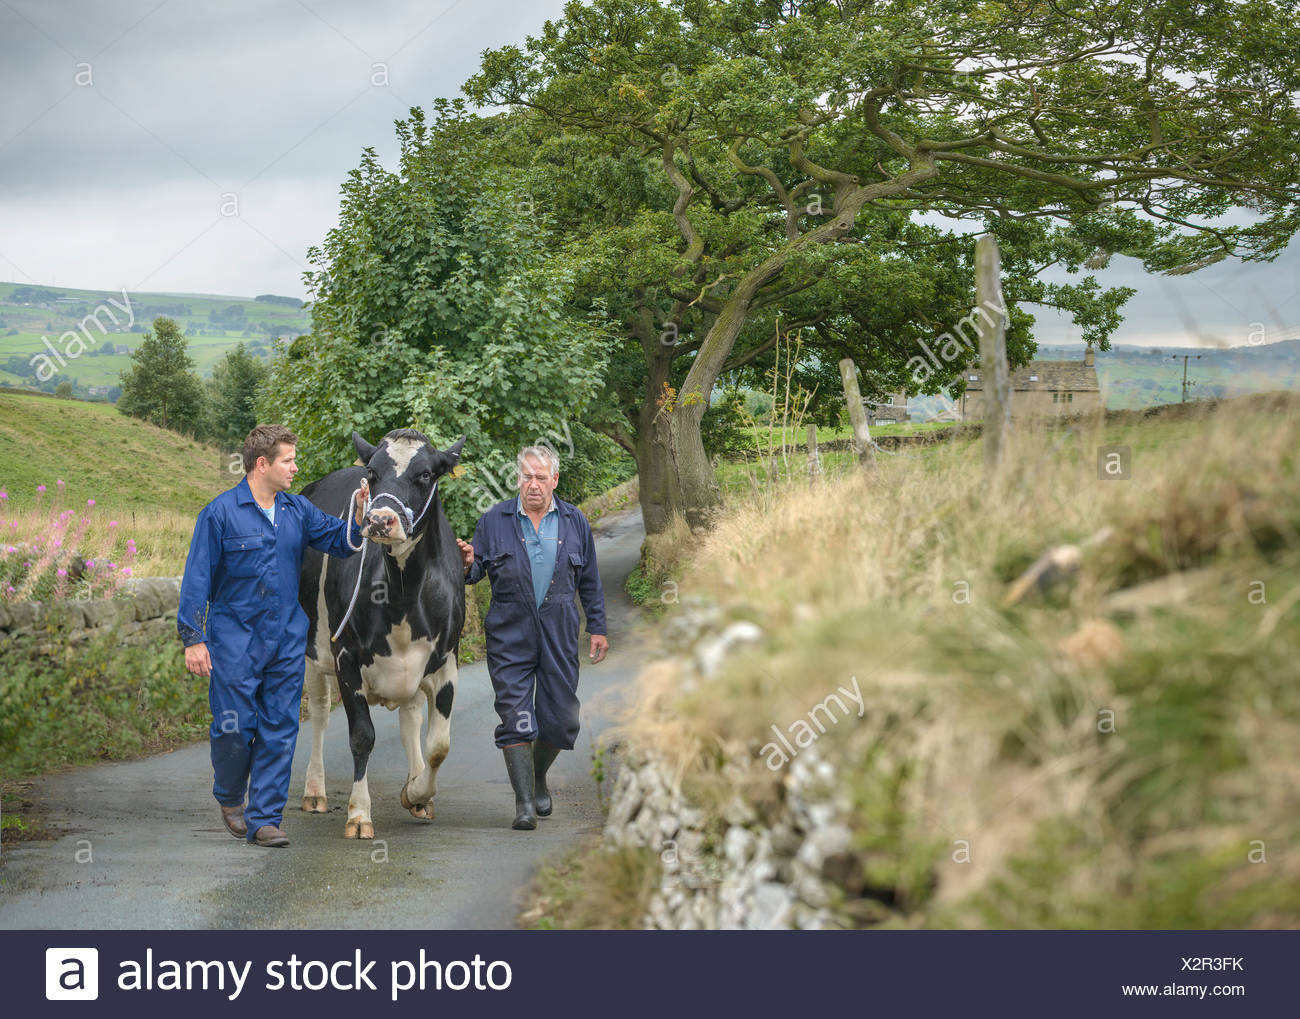 Farmer and son leading dairy cow on road - Stock Image